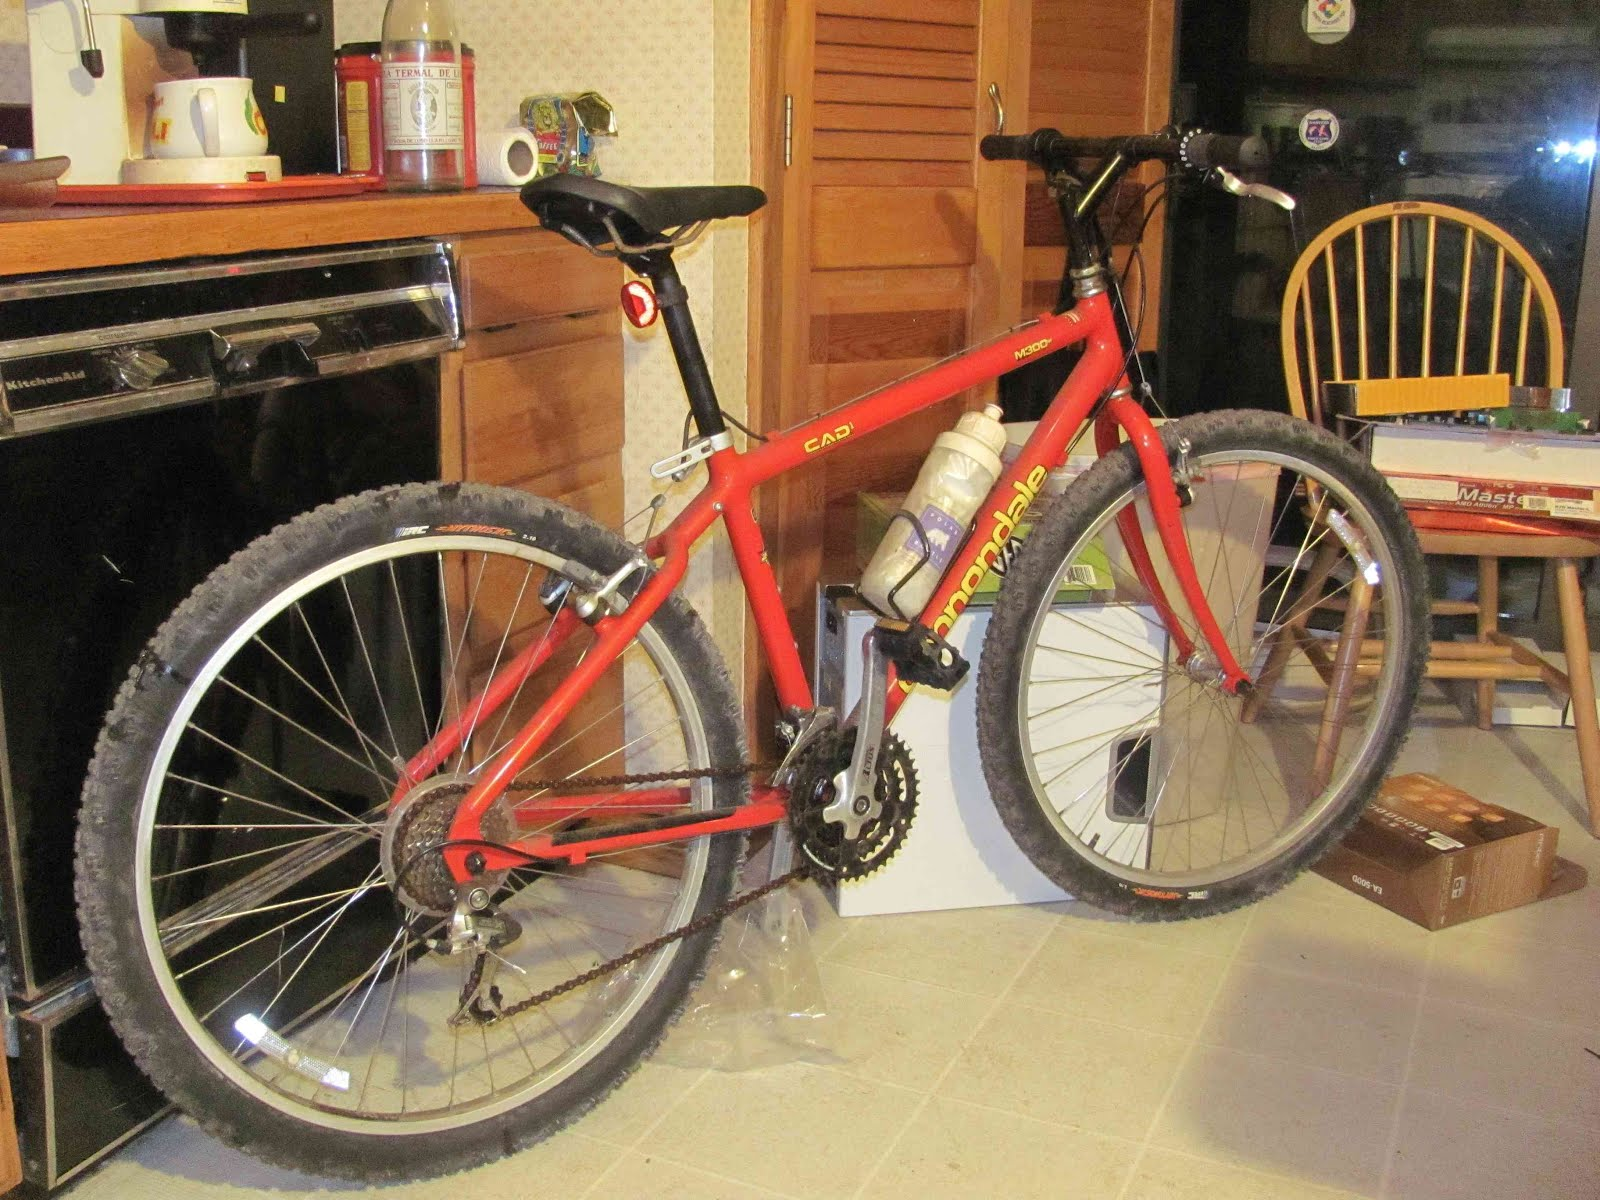 From the Pavement's Edge: Save the Cannondales: Another Rescued Classic